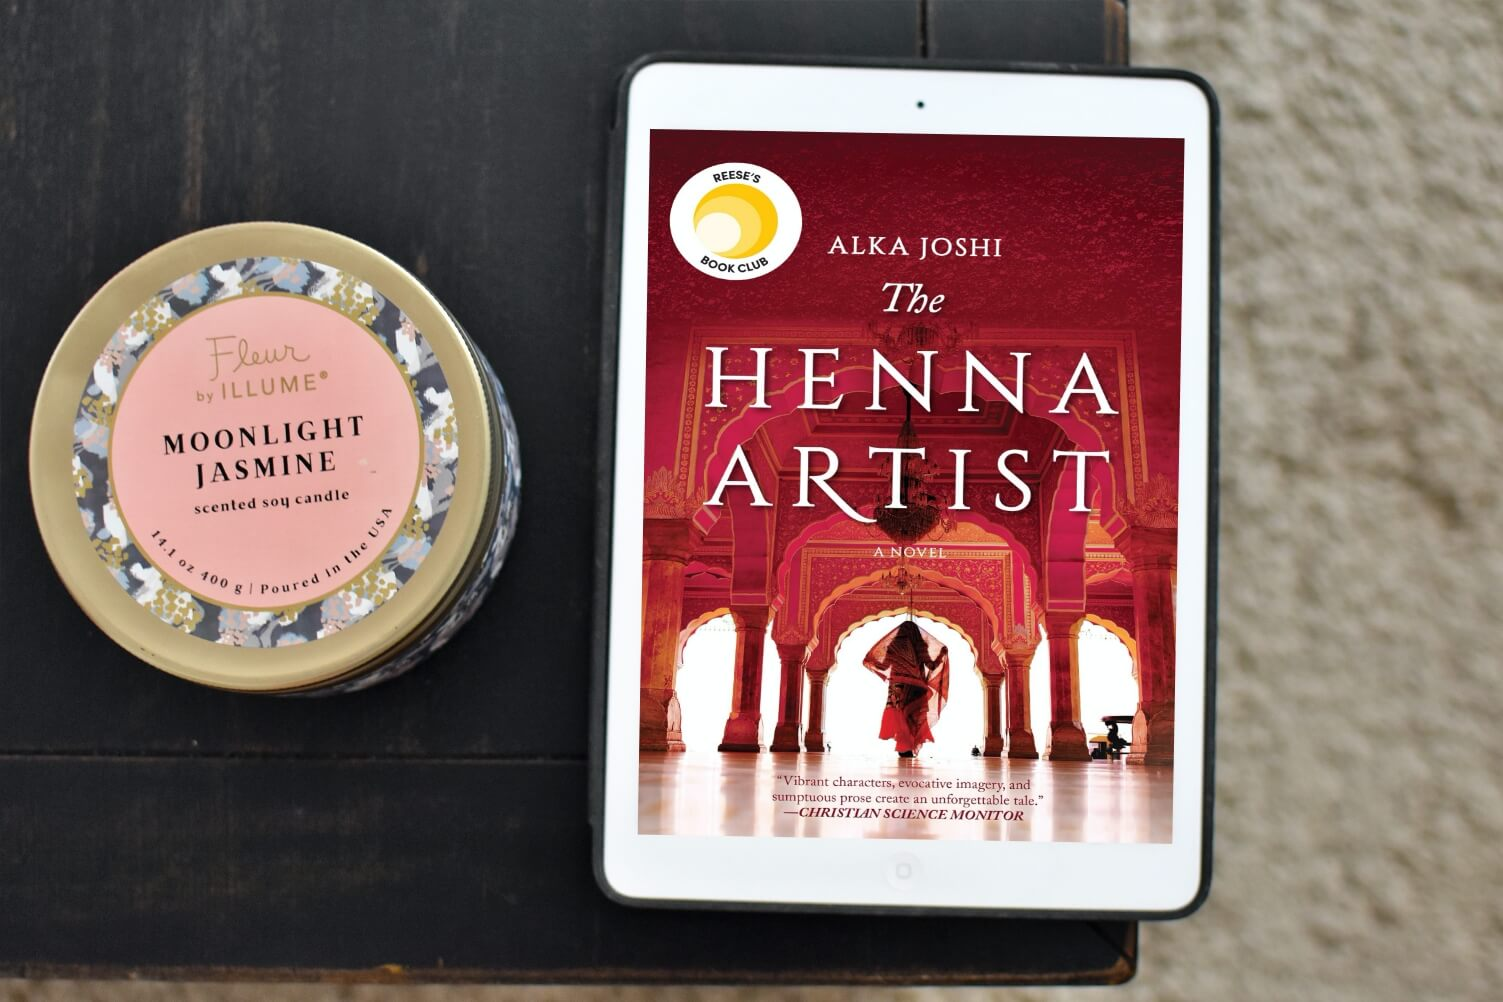 the henna artist review - book club chat